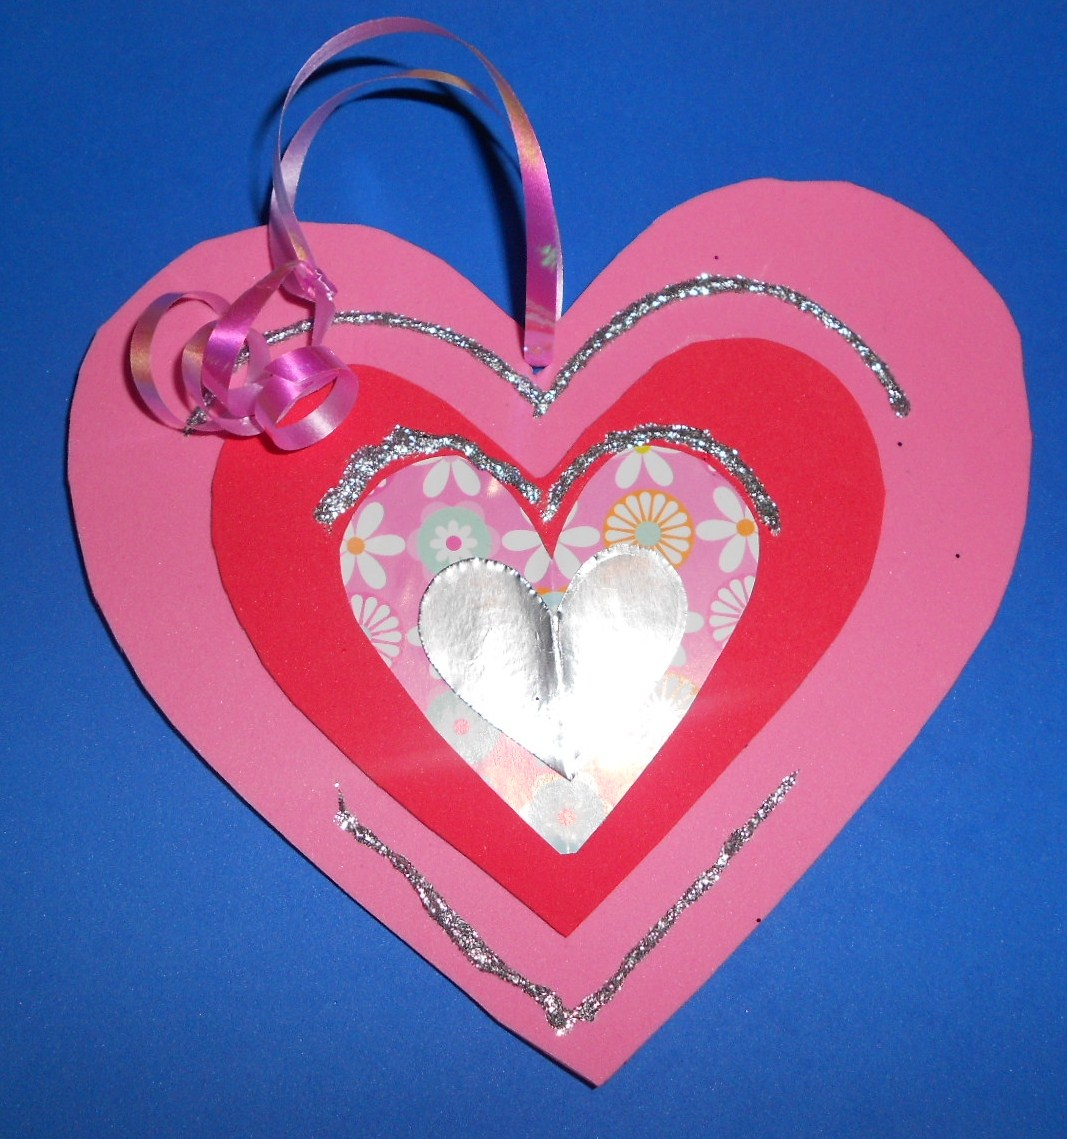 James Amp May Arts And Crafts Blog Valentine S Day Craft Page